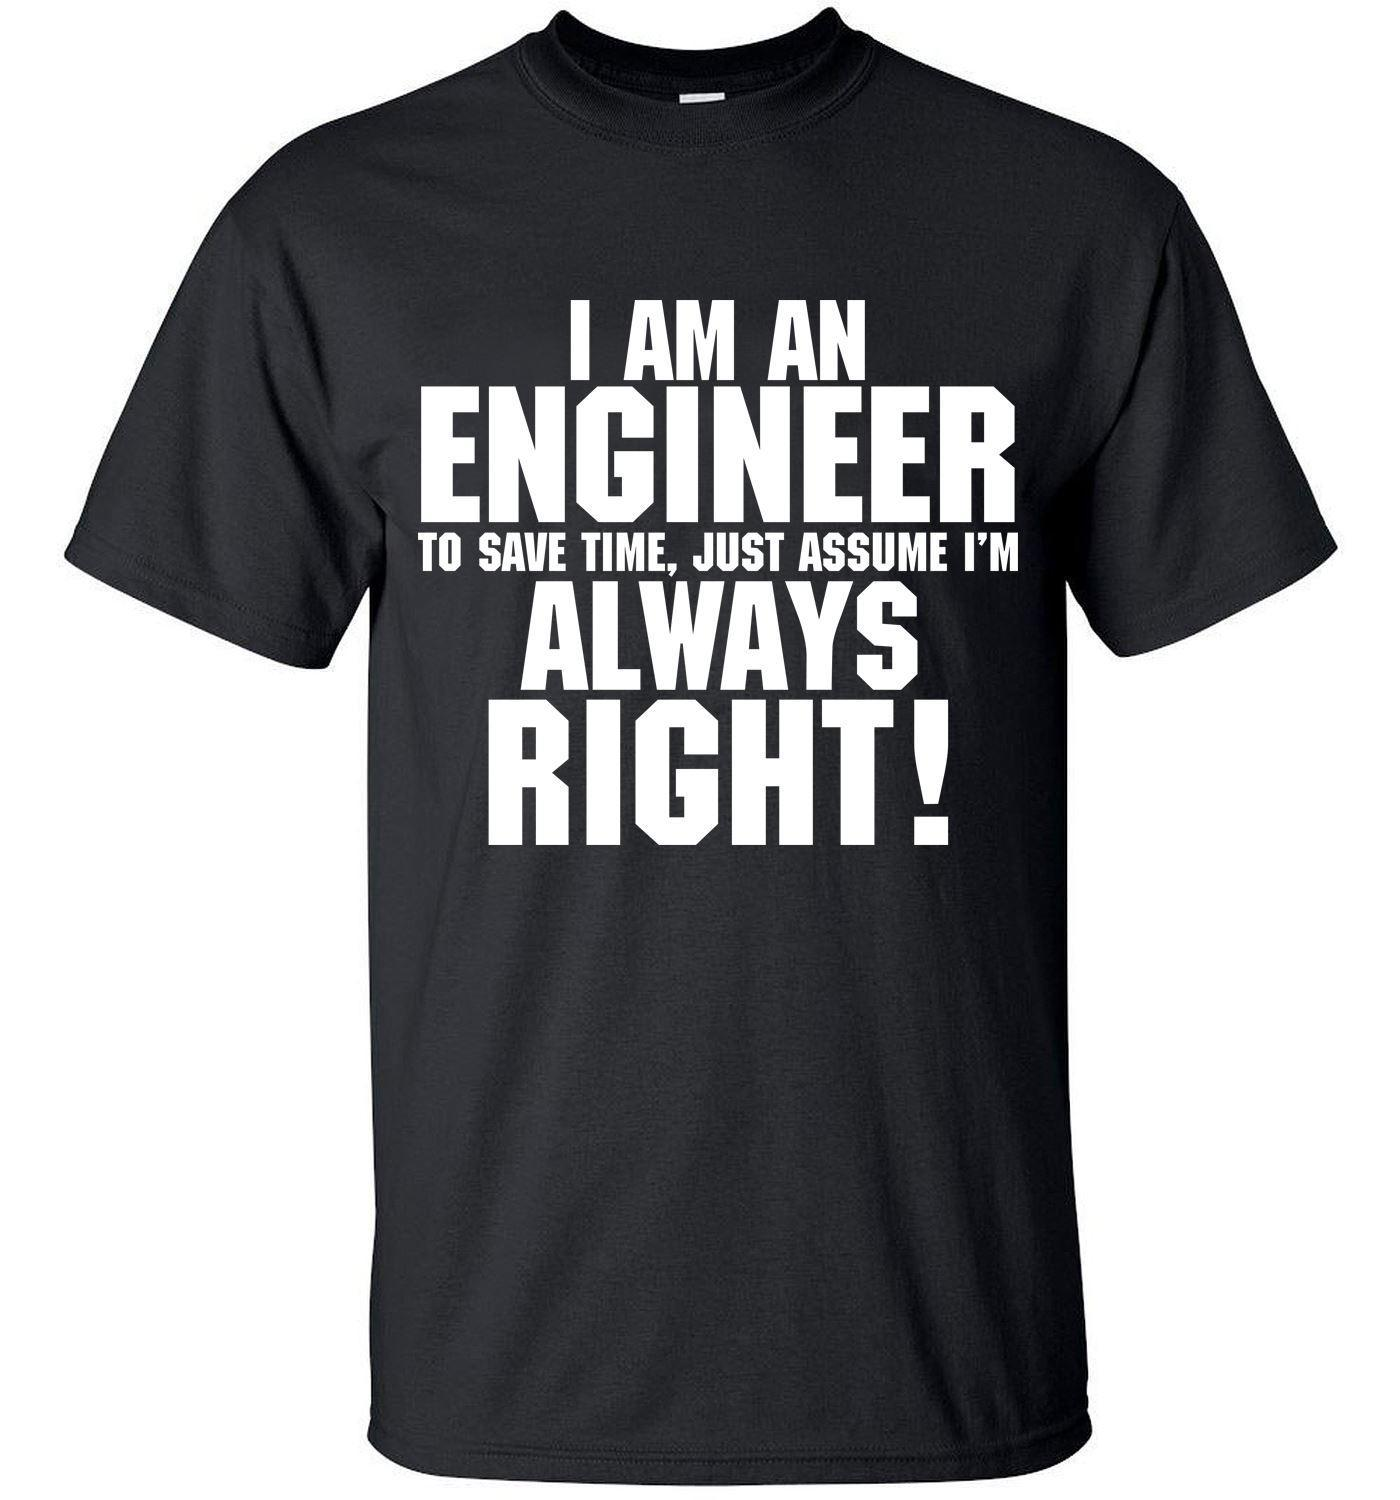 2019 Camping T Shirts Men S T Shirts Funny Trust Me I Am An Engineer